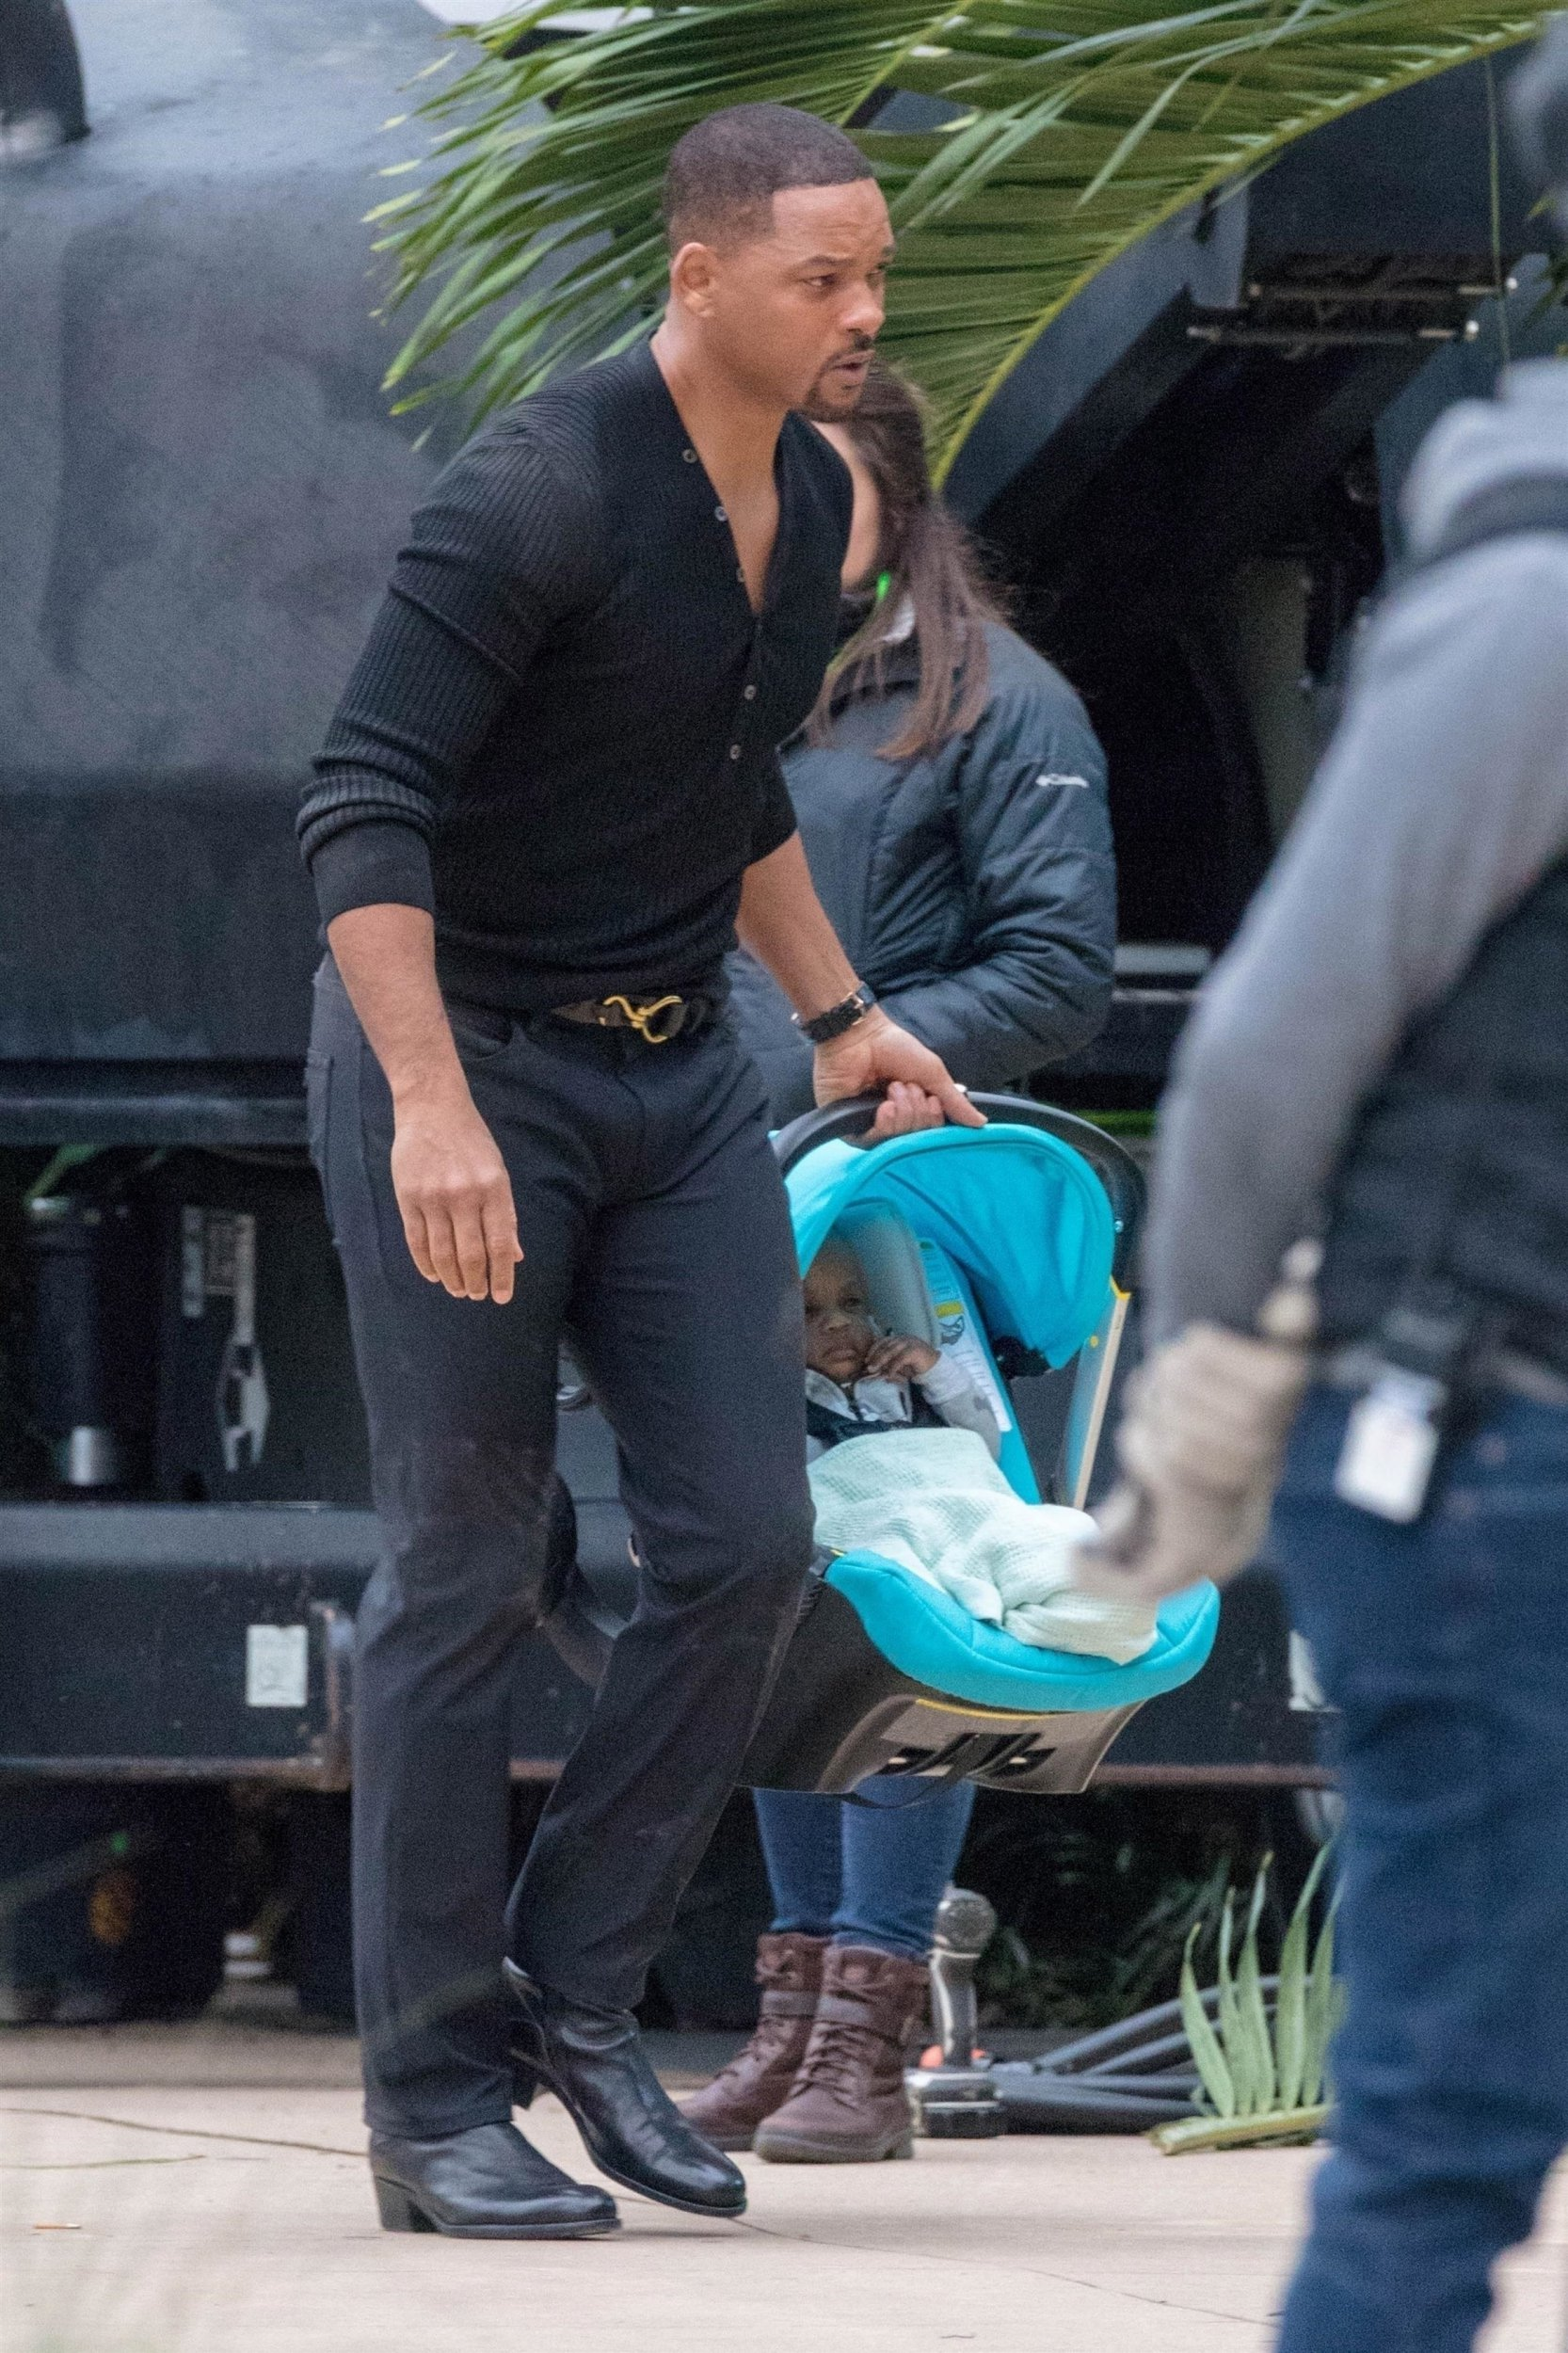 """Atlanta, GA - *EXCLUSIVE* Bad boy, Will Smith shows his sensitive side carrying a baby and his rugged side carrying a gun, on the set of """"Bad Boys for Life"""" filming in Atlanta. Smith and Martin Lawrence are reprising their roles as Miami cops Mike Lowry and Marcus Burnett for the third installment in the hit franchise which is due to hit theaters January 2020. *Shot on January 14, 2019* Pictured: Will Smith BACKGRID USA 16 JANUARY 2019 USA: +1 310 798 9111 / usasales@backgrid.com UK: +44 208 344 2007 / uksales@backgrid.com *UK Clients - Pictures Containing Children Please Pixelate Face Prior To Publication*"""